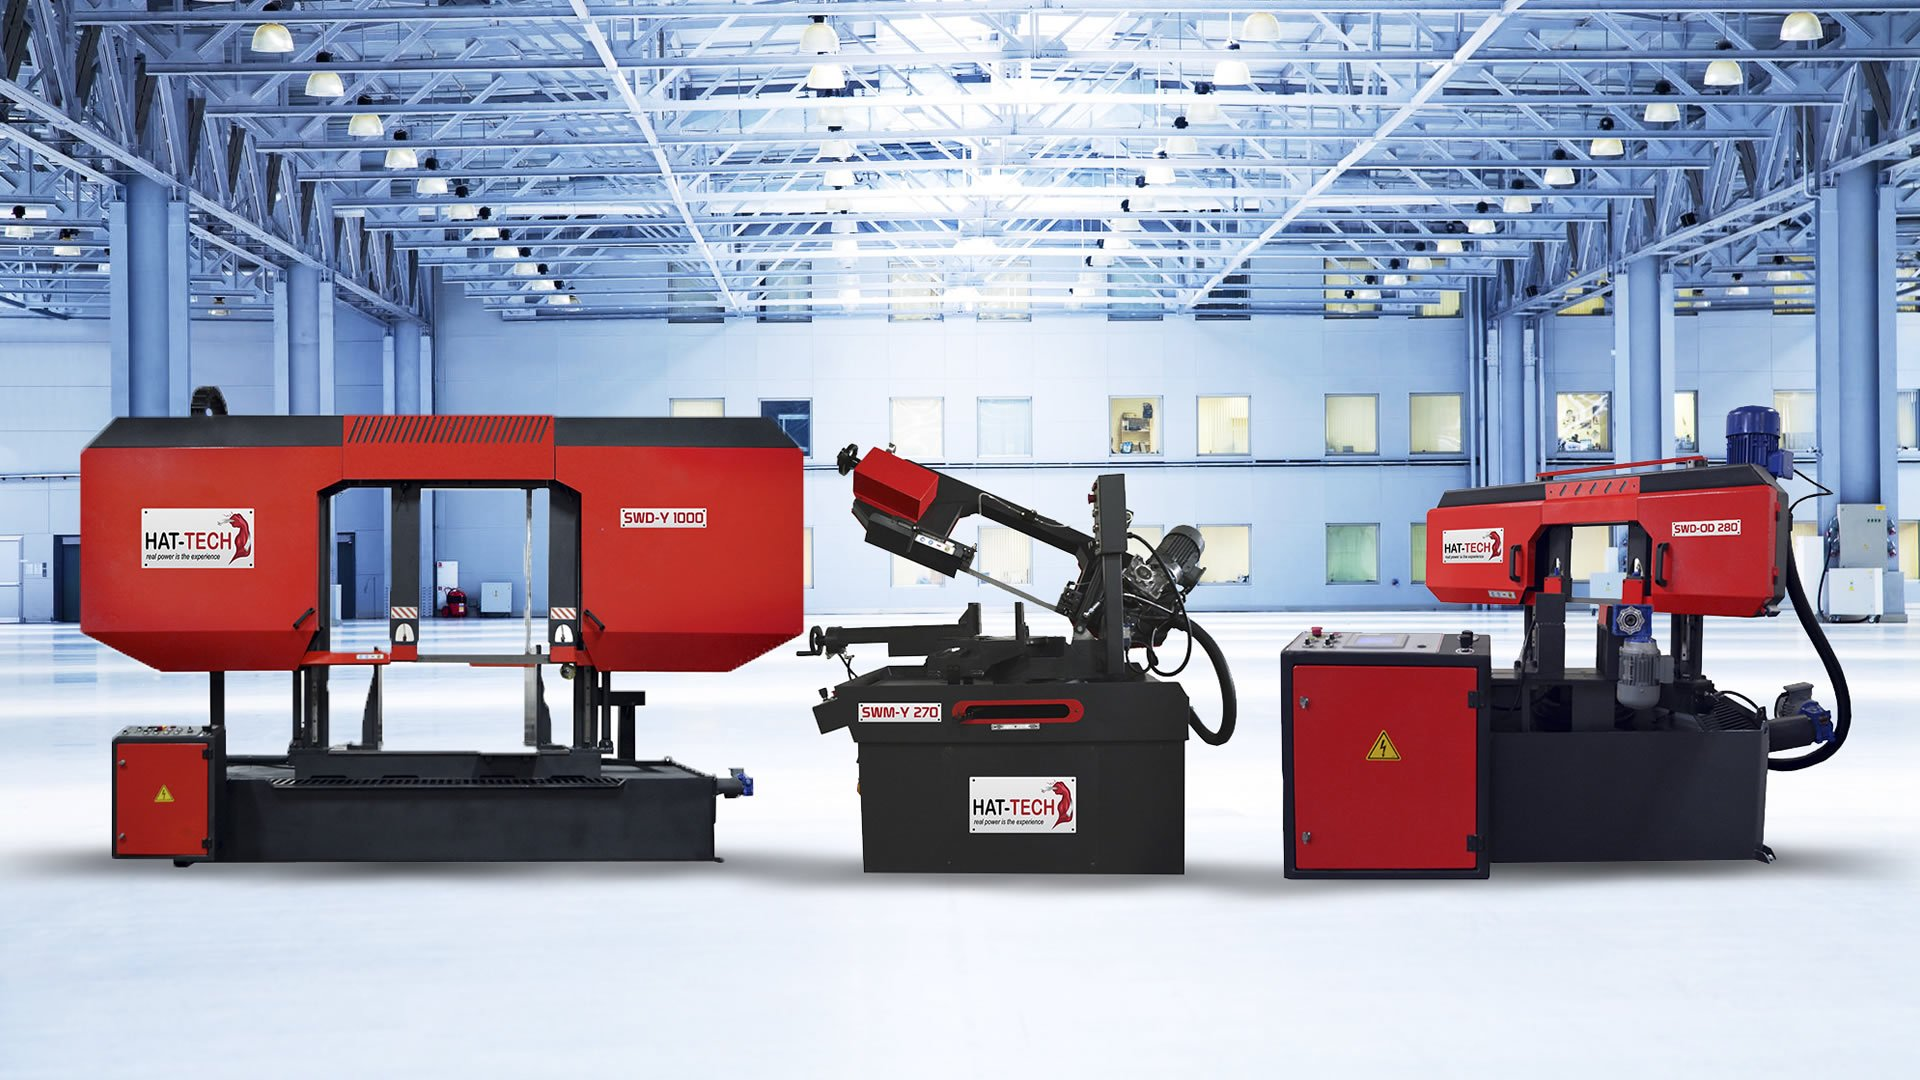 HAT-TECH MACHINE TOOLS